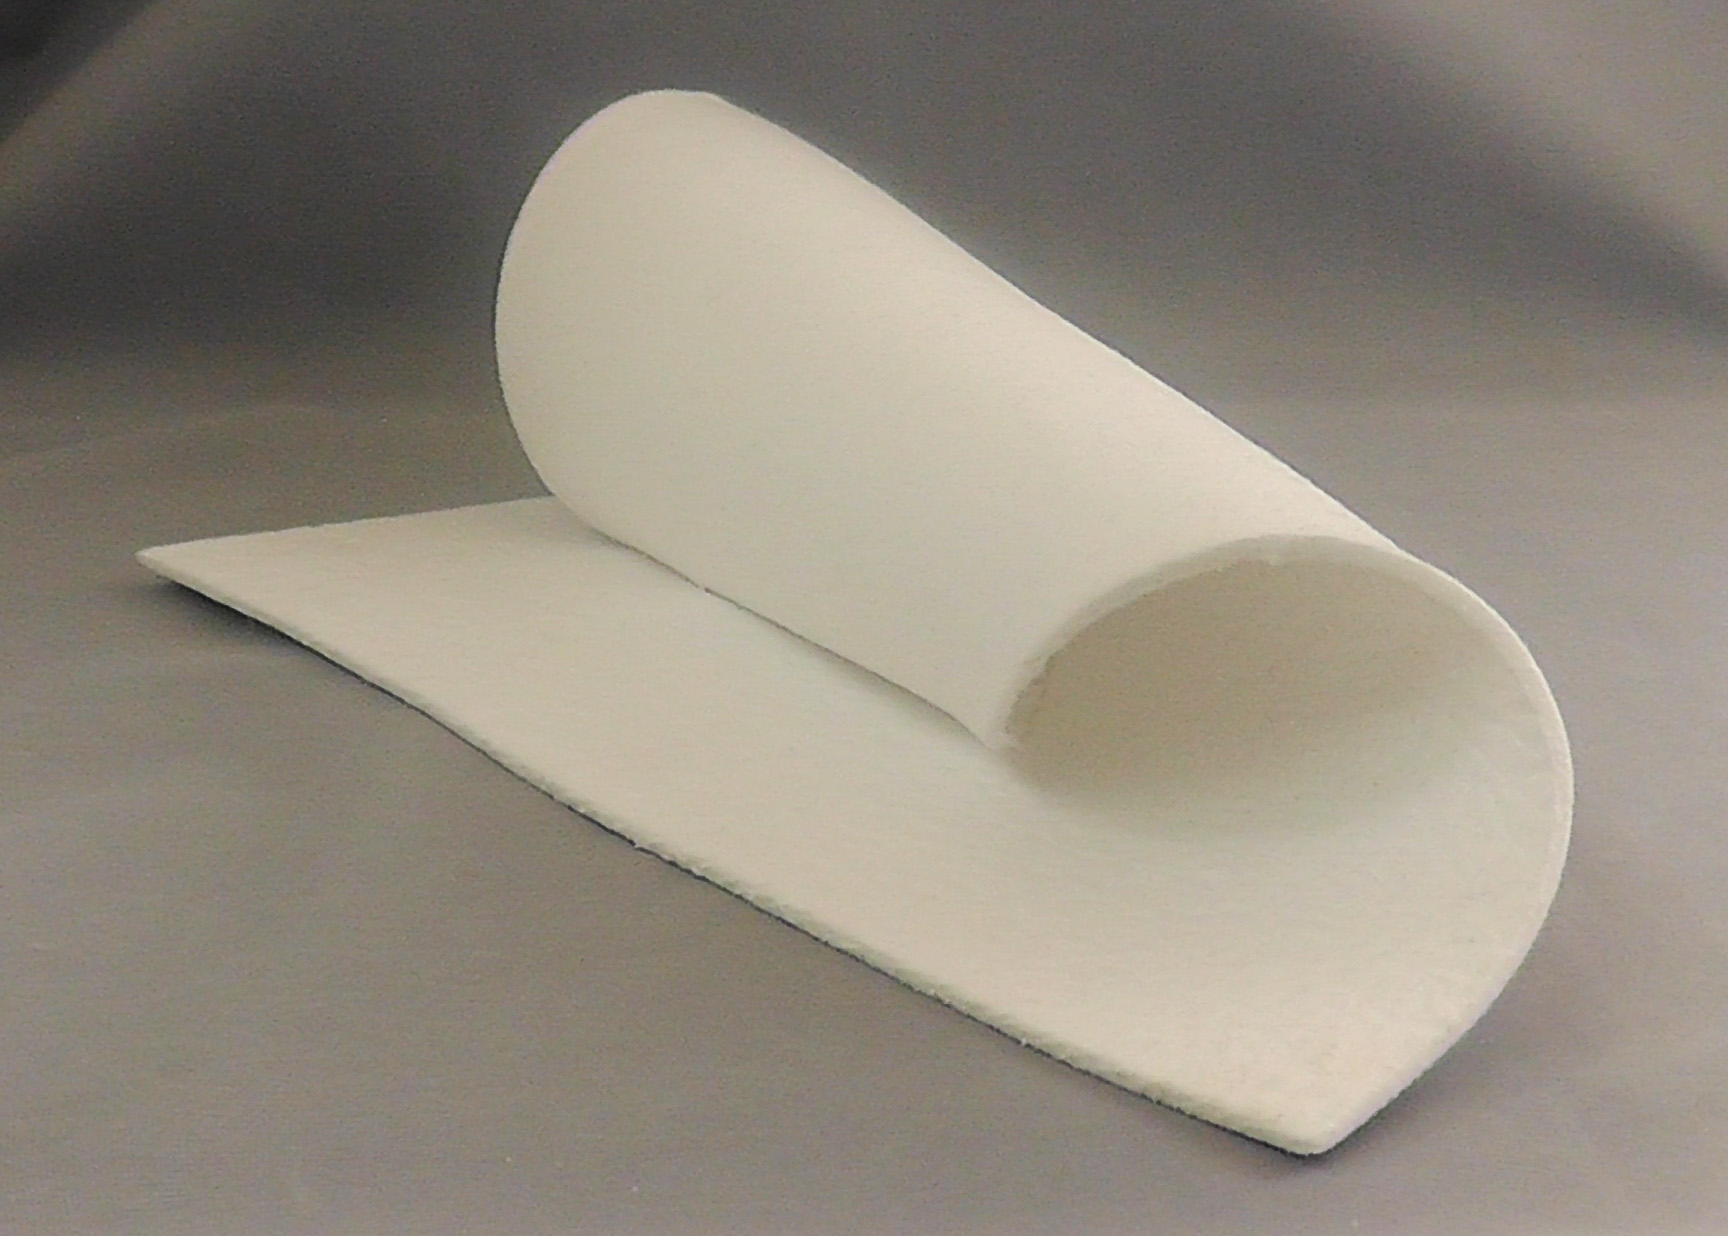 fiber paper Kiln paper is made from ceramic fiber and can simply be laid on top of a kiln shelf shelf wash, also called kiln wash, needs to be applied to molds and shelves after every few firings delphi tip: fiber products, like fiber paper and rope, can be used for shaping, creating open spaces to your glass art and creating relief designs.